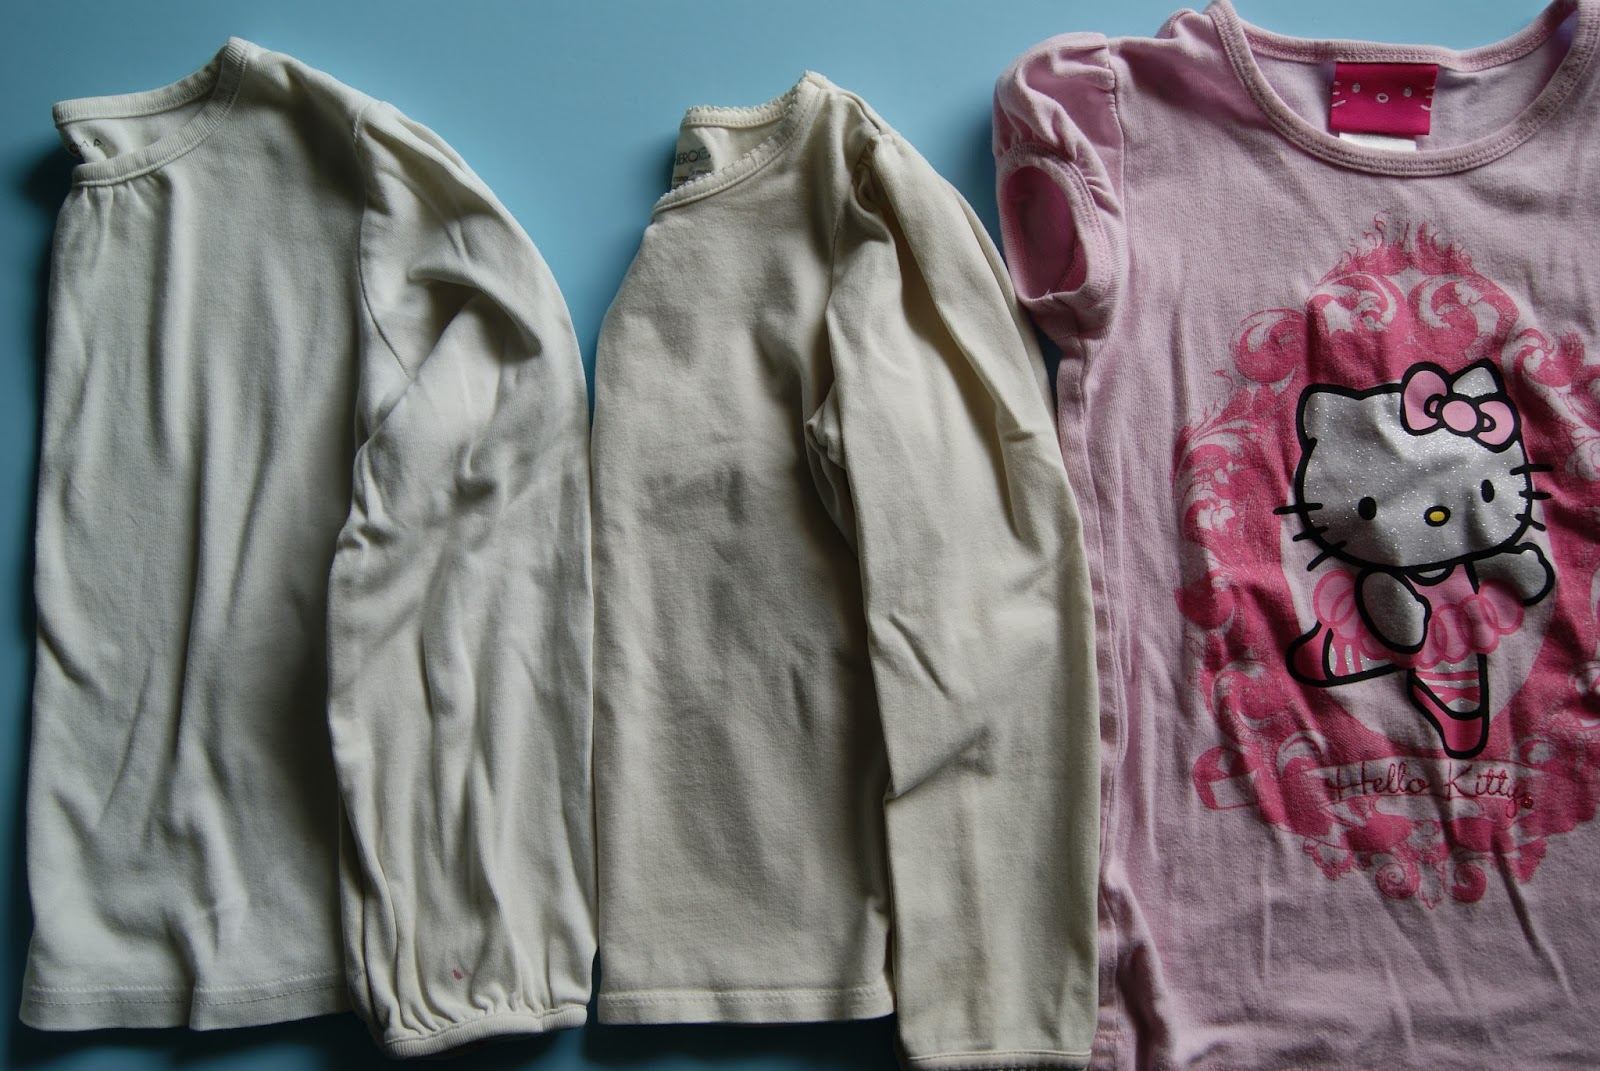 refashion month-old girl t-shirts